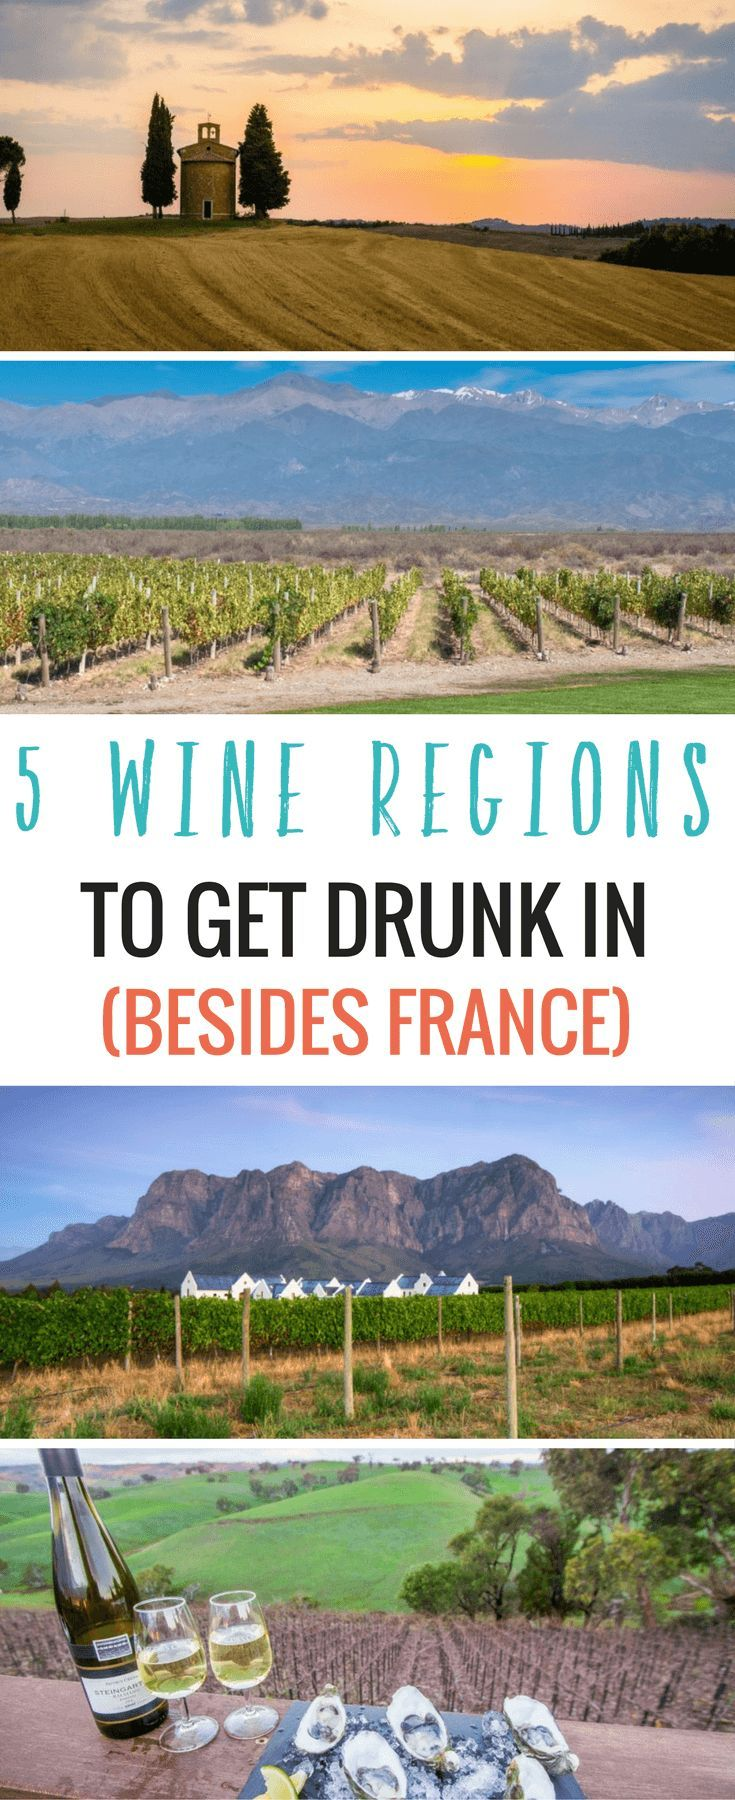 Where's your favorite wine region around the world? Check out these five incredible places to drink wine in the world - Stellenbosch, Barossa Valley, Tuscany and more! #Wine #BucketList